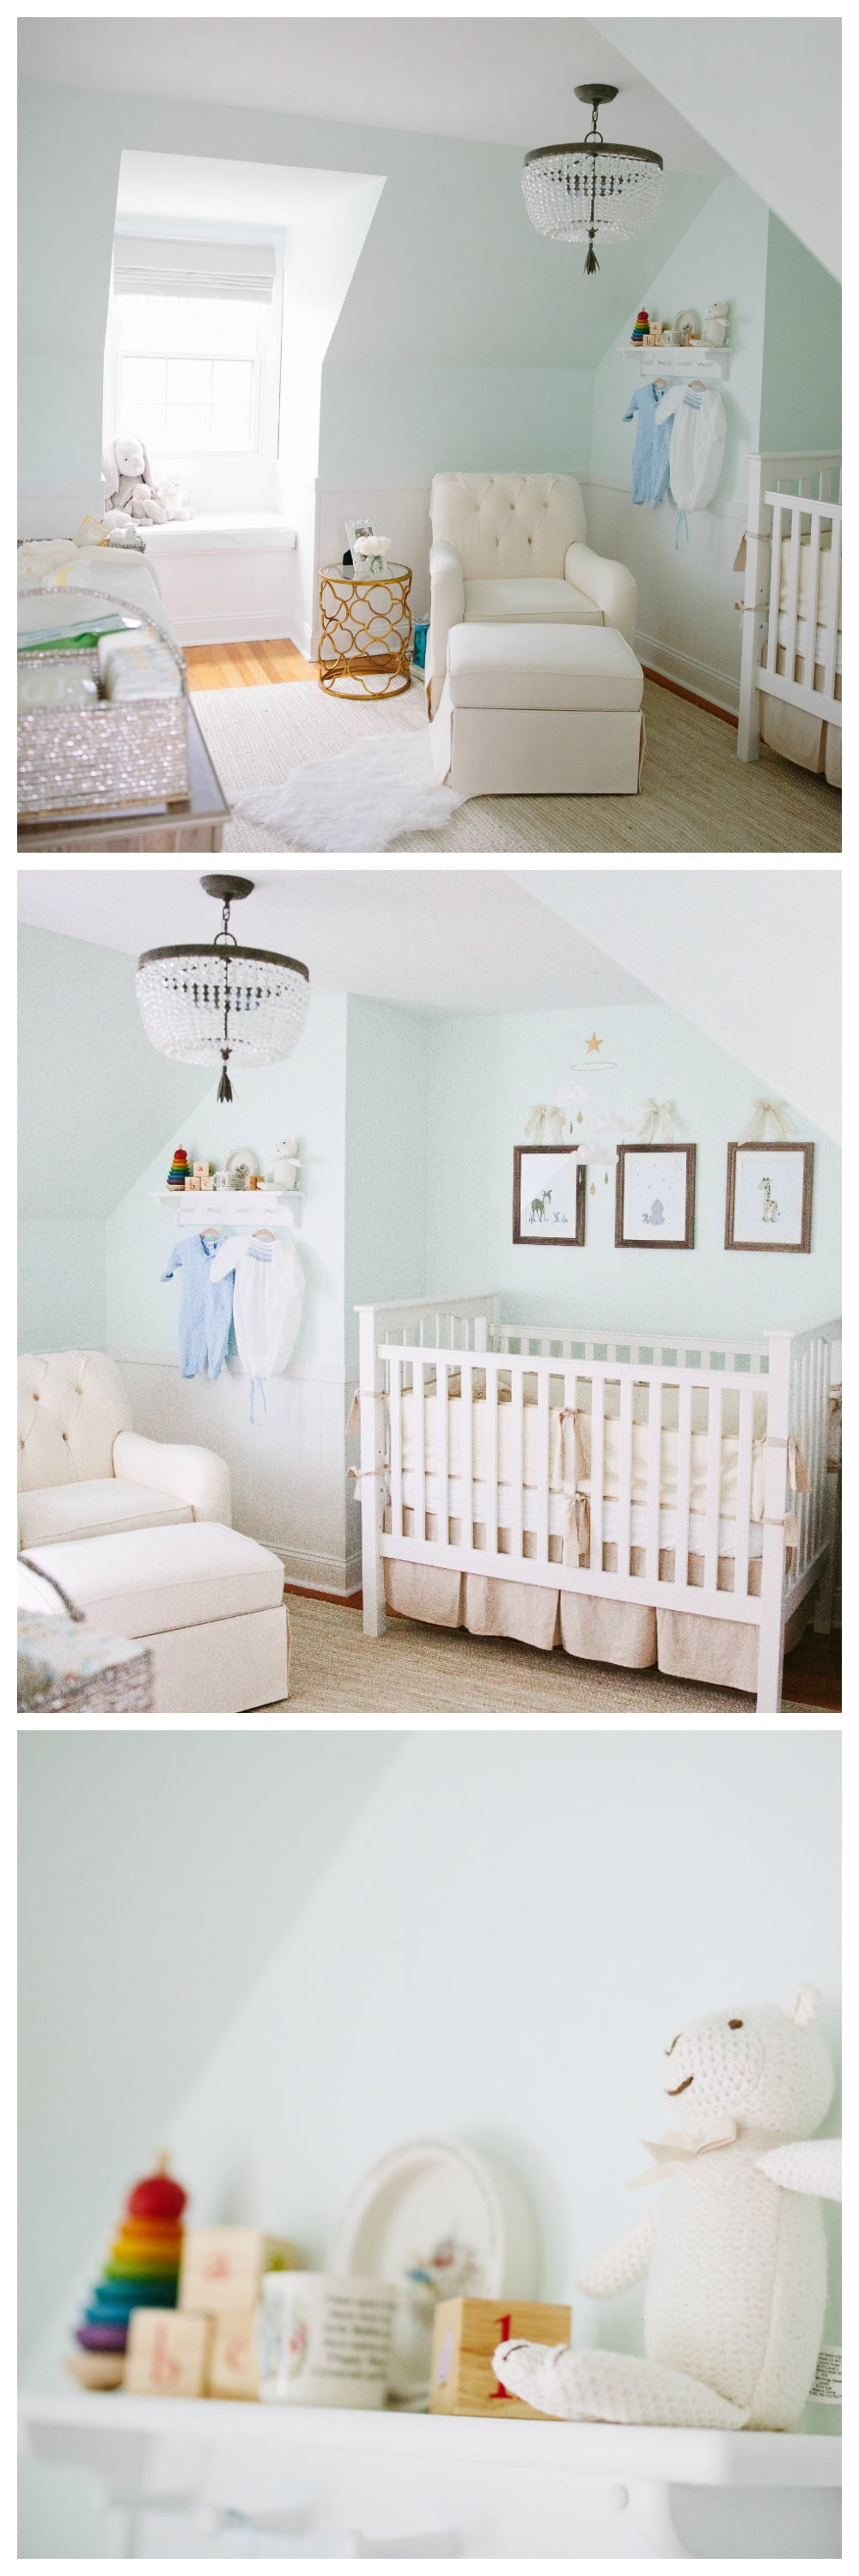 Elegant Gender Neutral Nursery